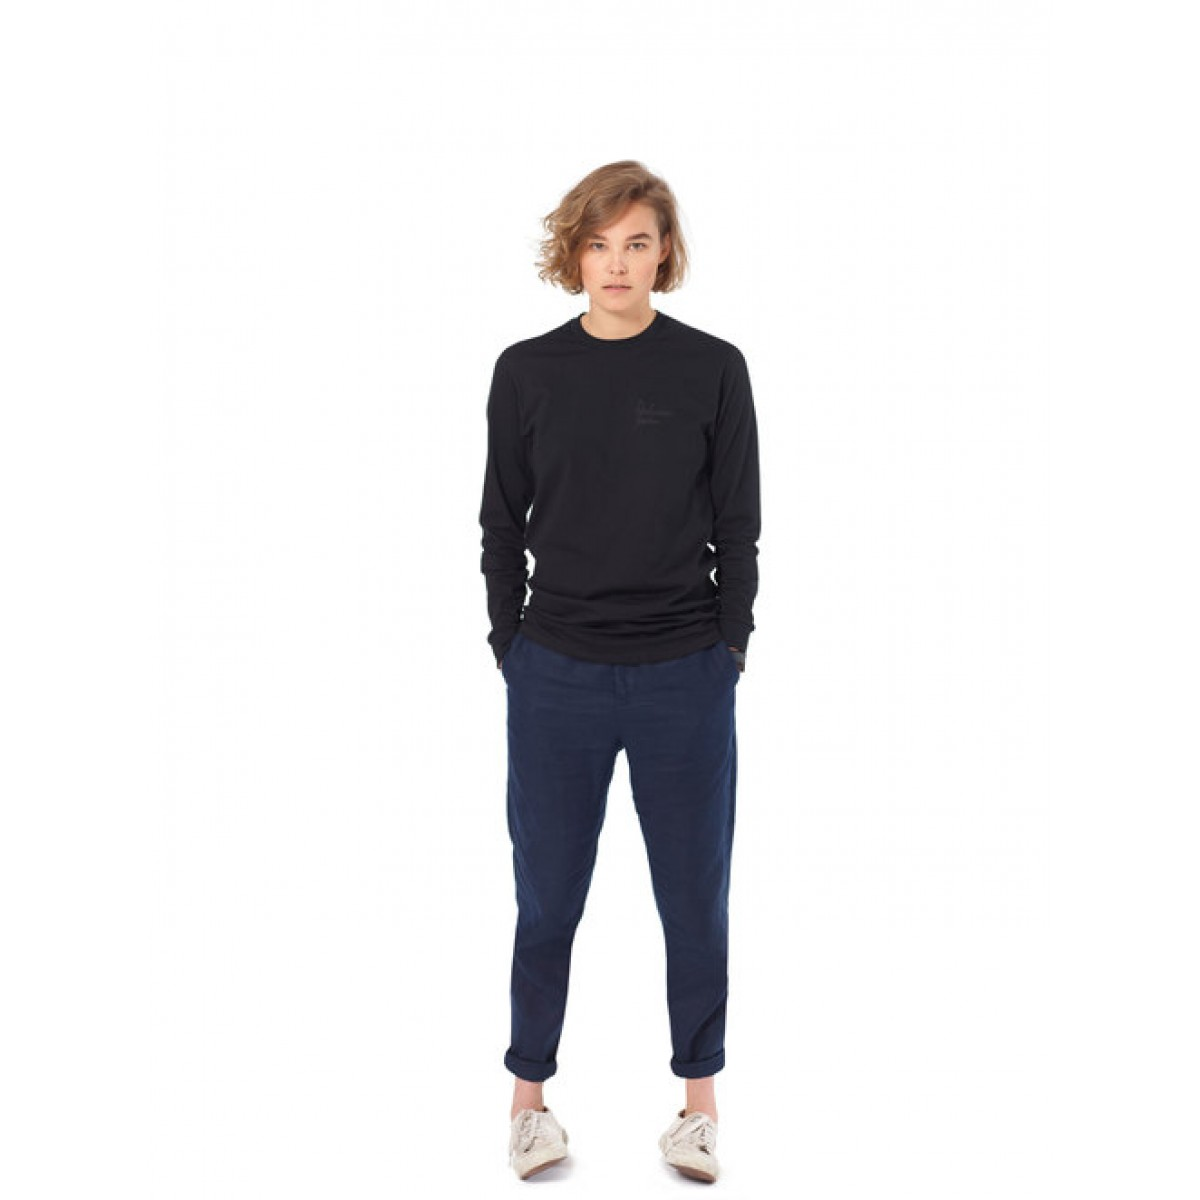 fabelwesen berlin FW.10 SIMPLE TWICE Longsleeve